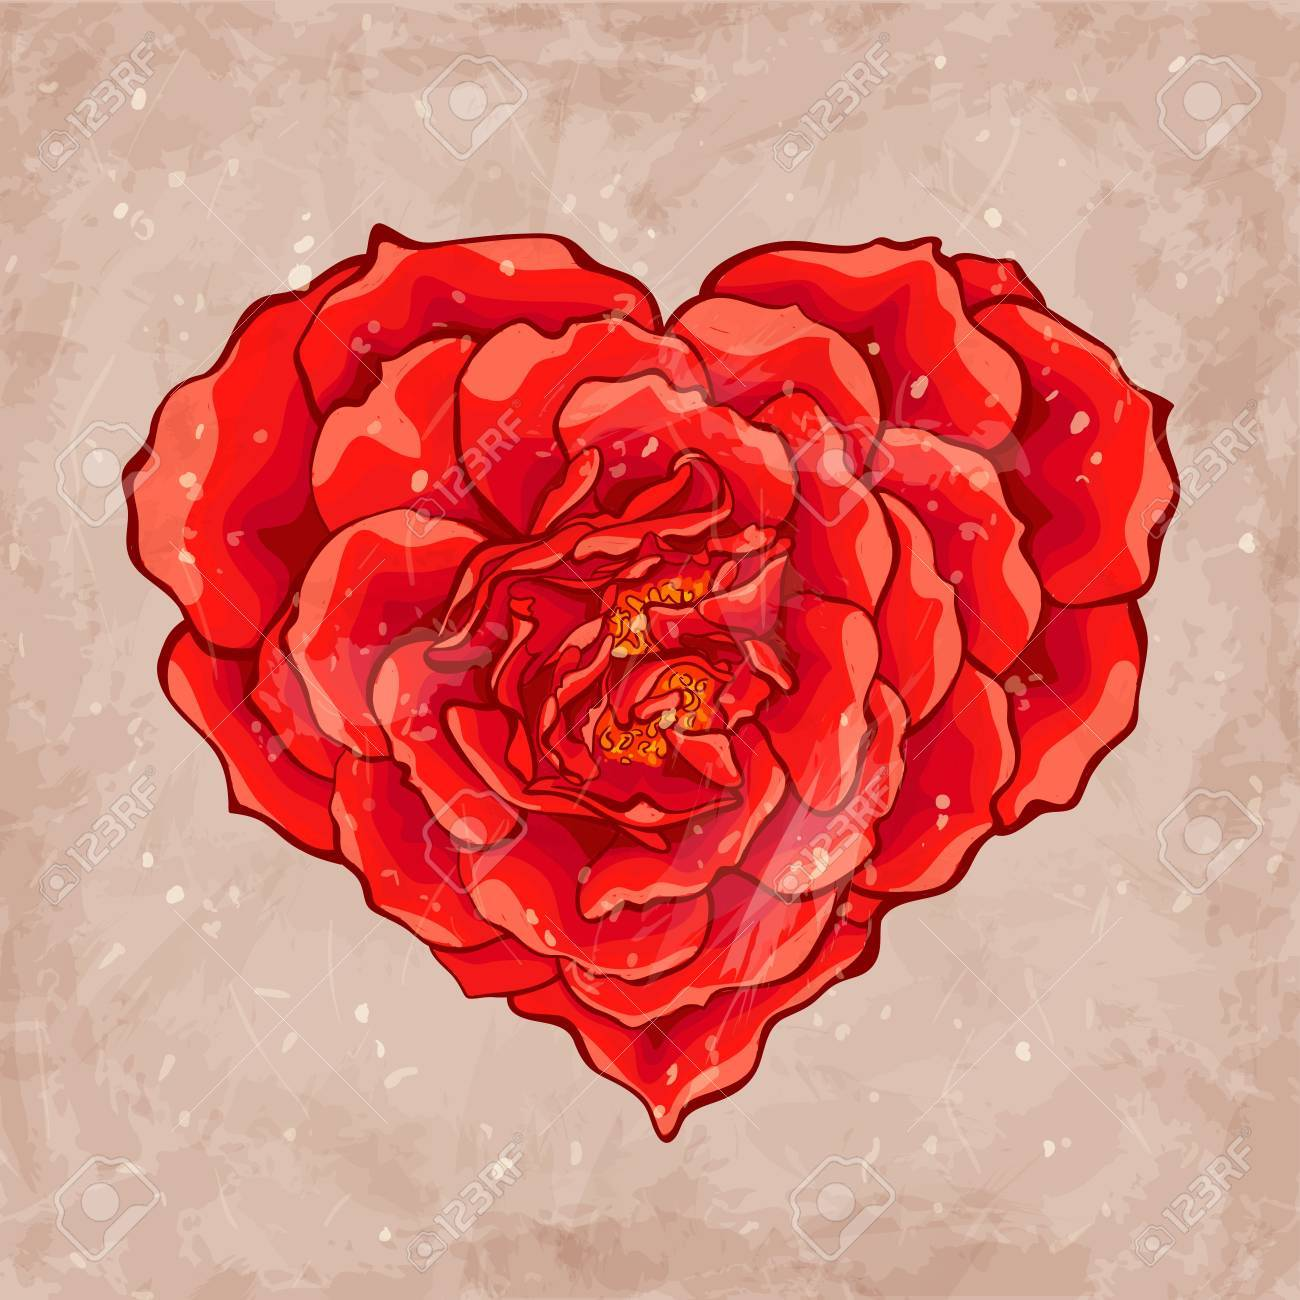 Red rose heart - 18305085